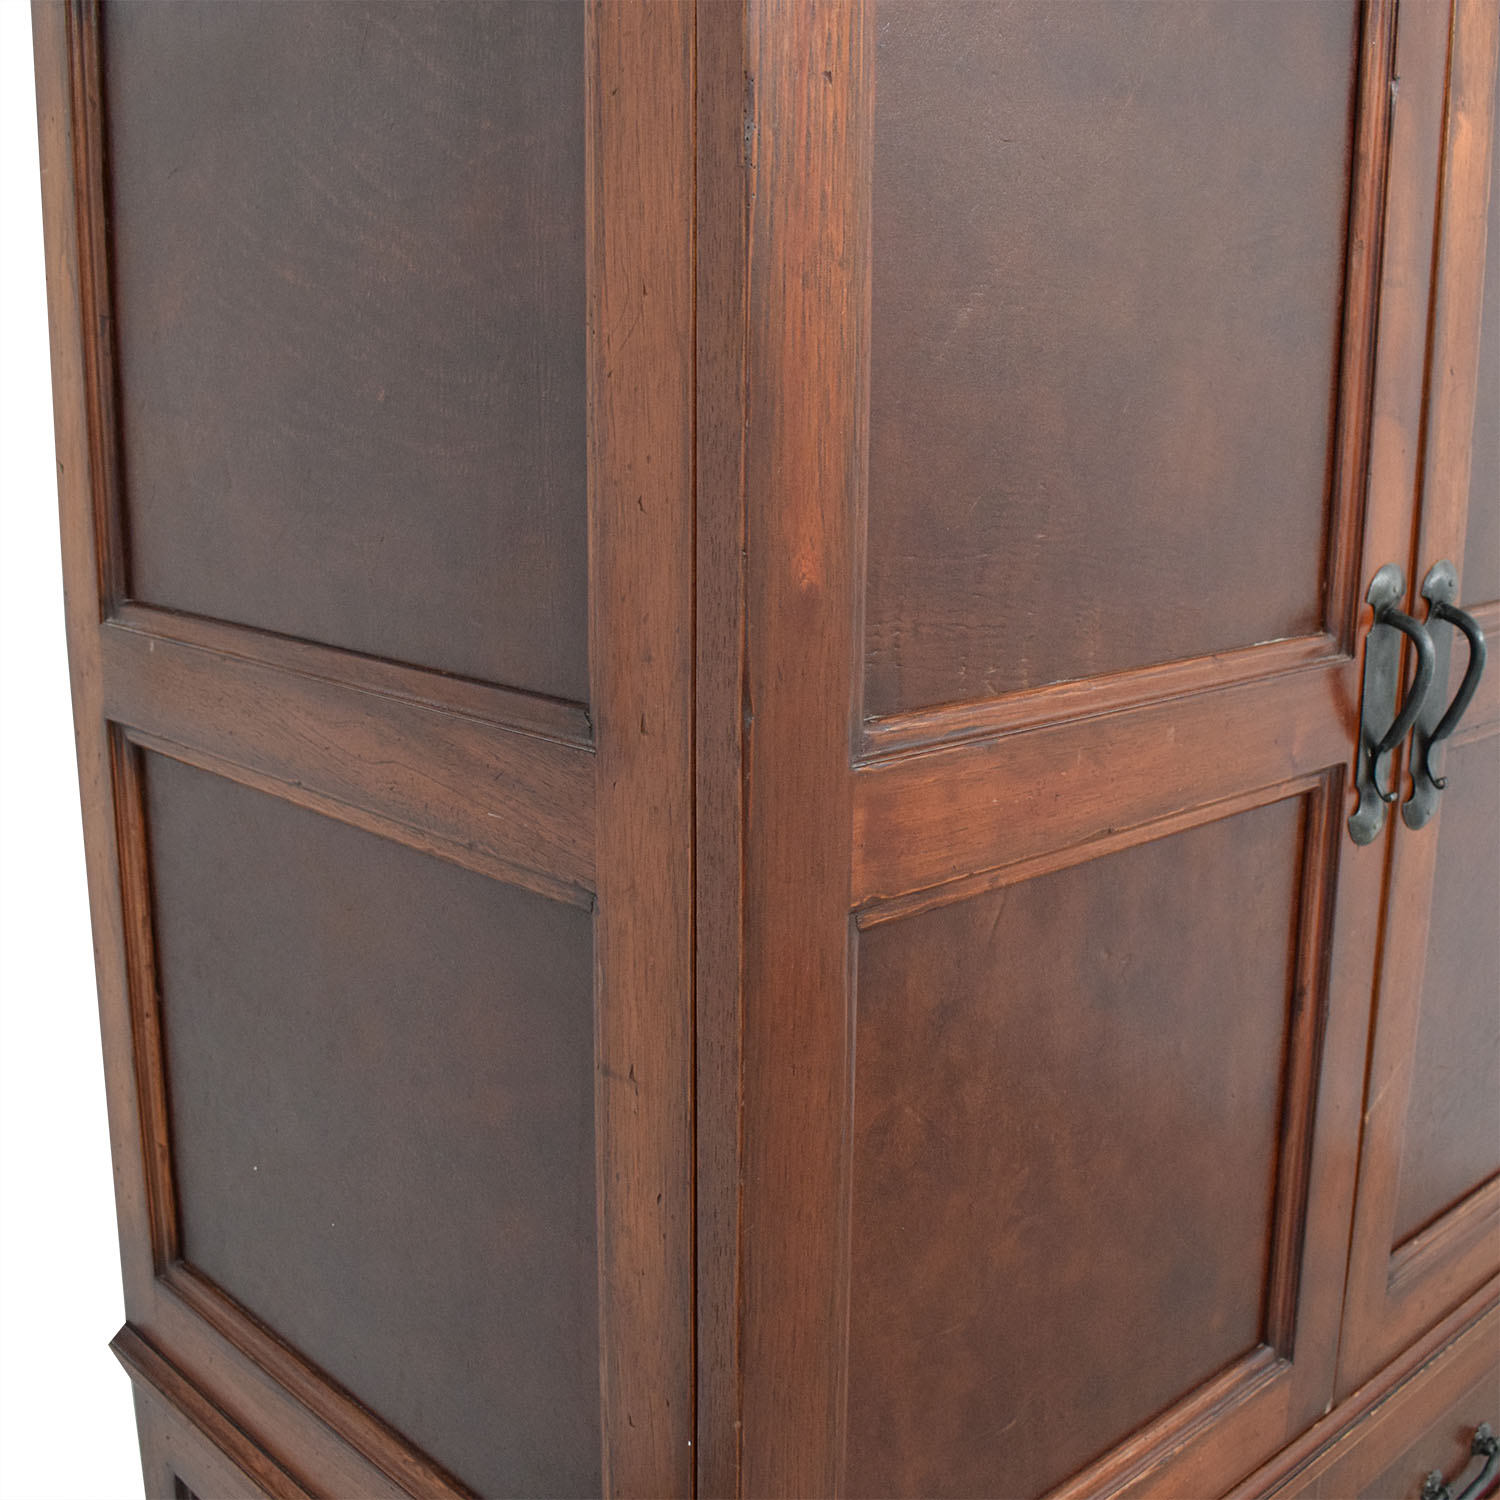 Domain Domain Armoire with Drawers for sale